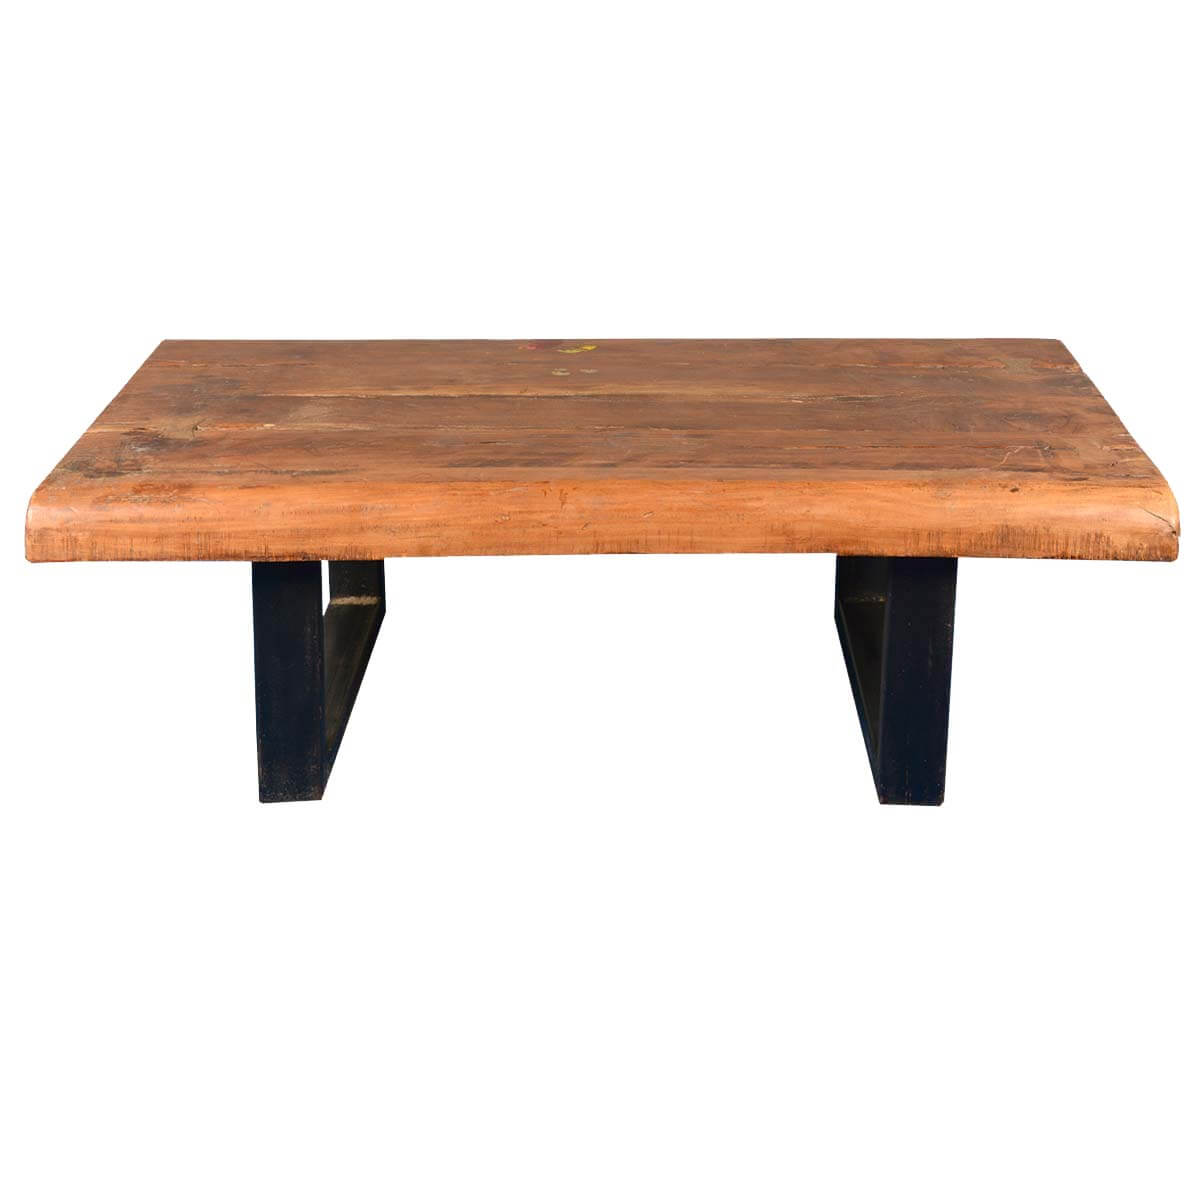 Santa Fe Natural Contemporary Iron Reclaimed Wood Coffee Table